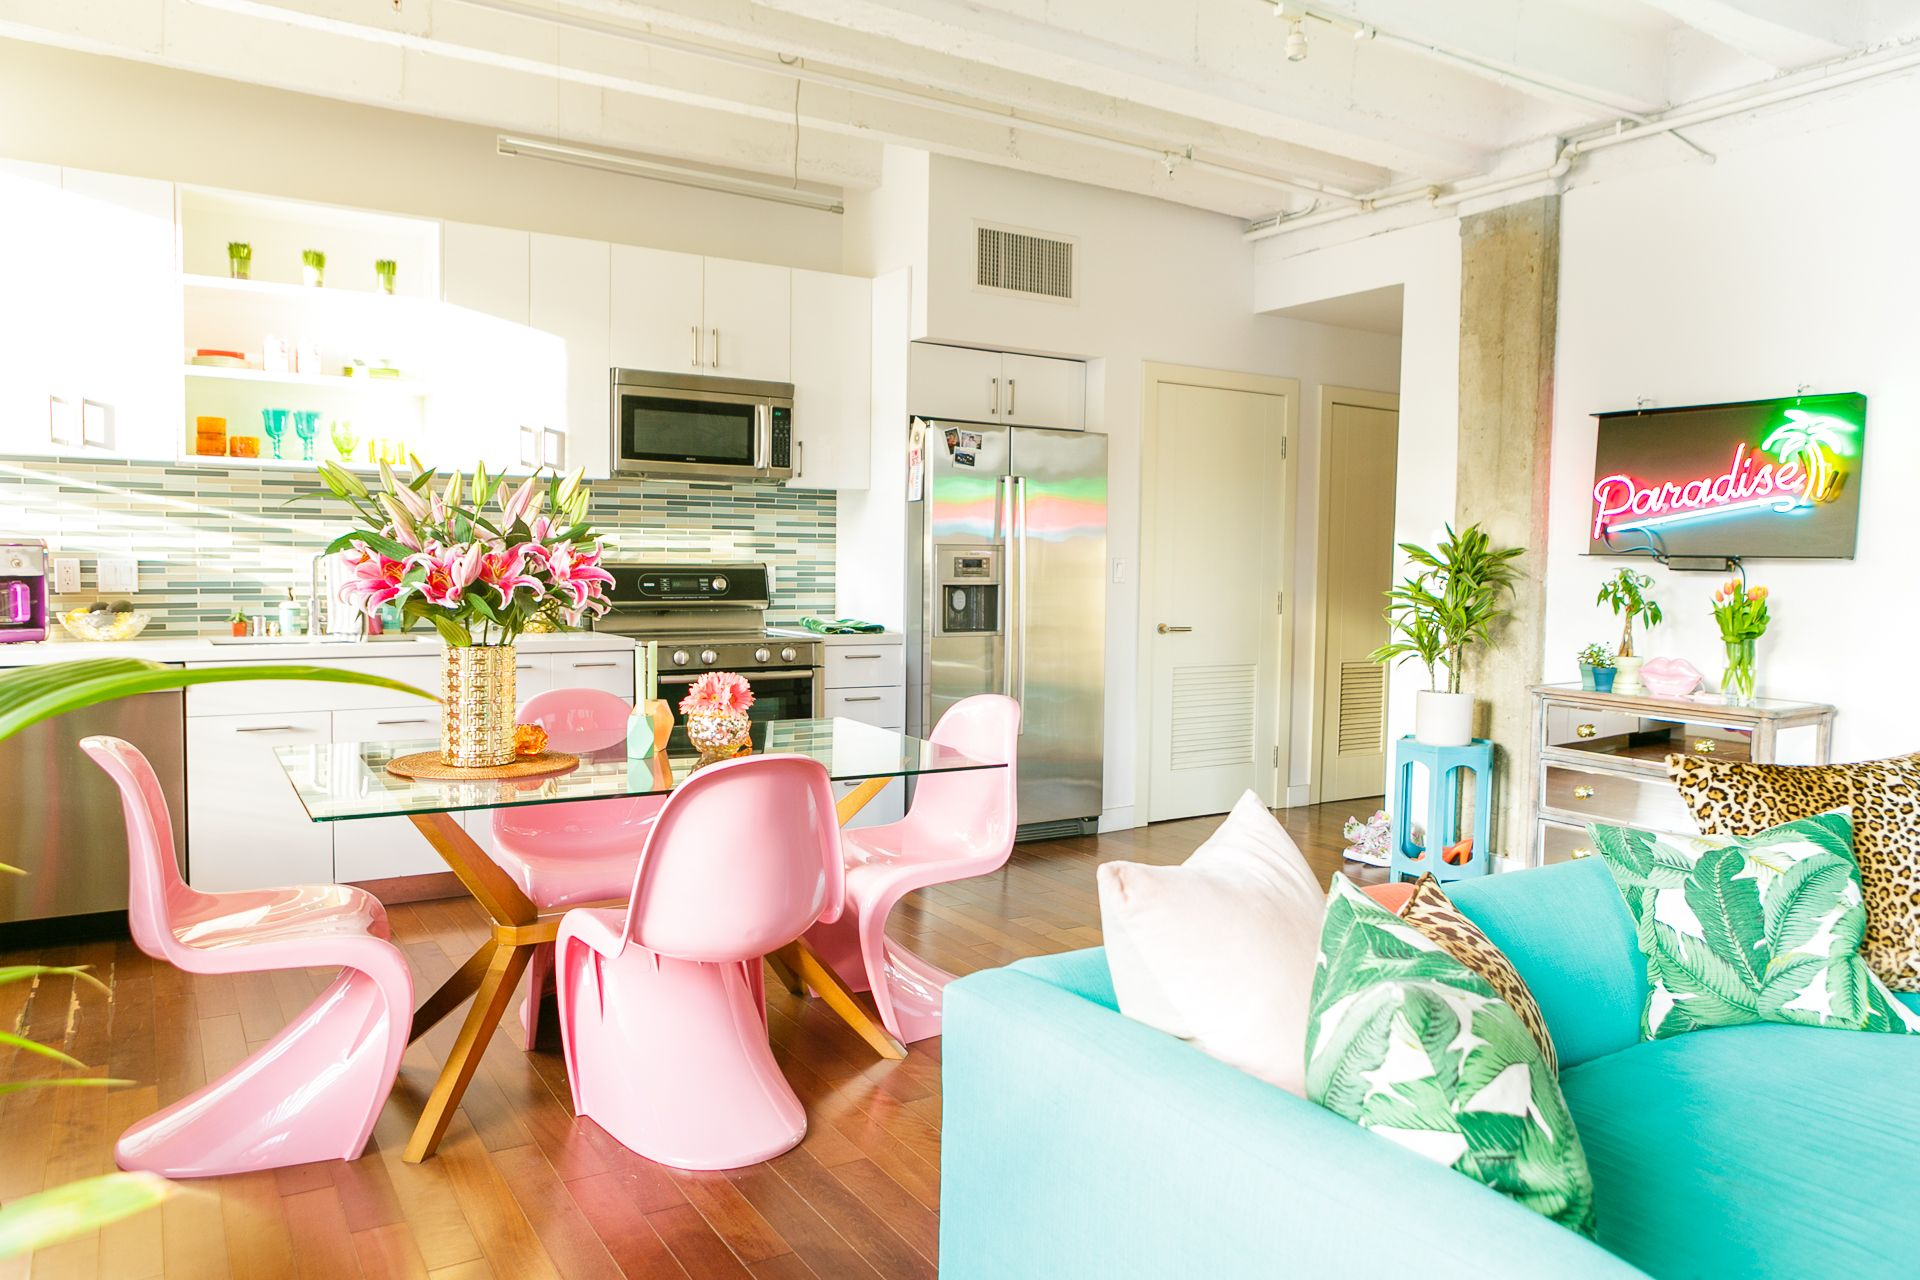 Paint Colors That Match This Apartment Therapy Photo Sw 6311